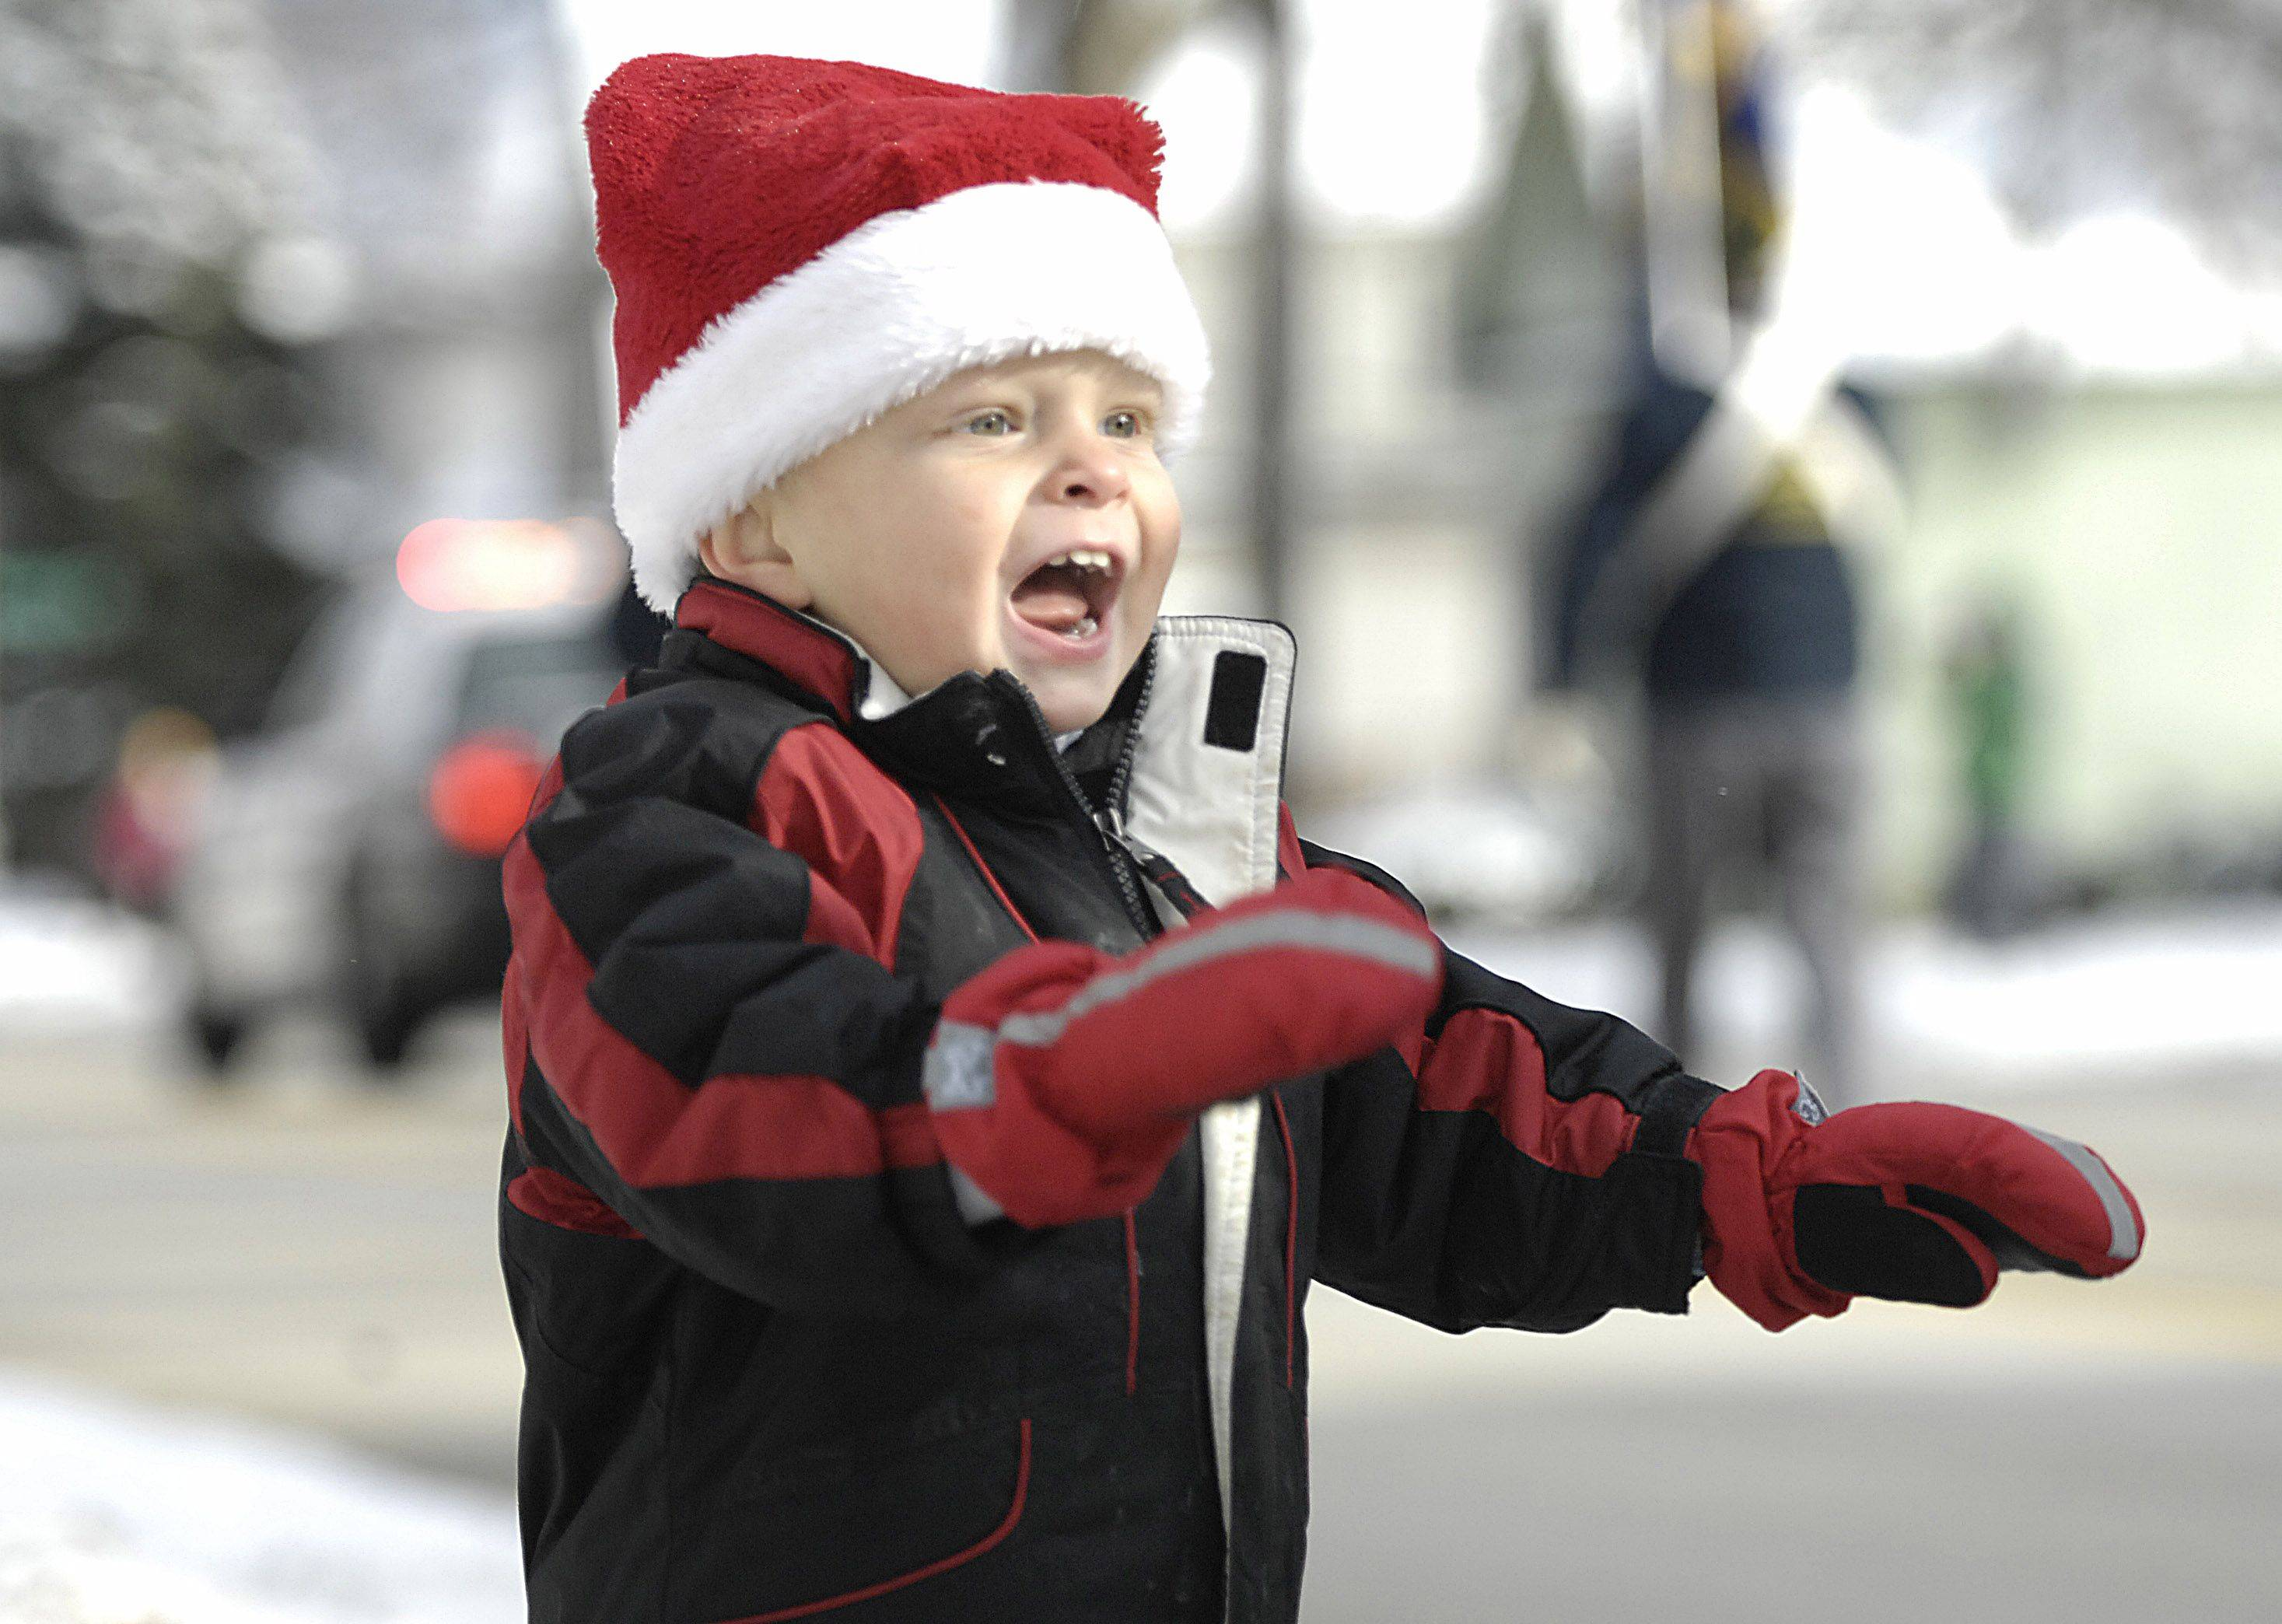 Keegan Brennen, 2, wears his Christmas hat as he jumps and screams for candy at Sunday's Merry Cary Holiday Parade in downtown Cary. He was with his mom Lisa of Cary.